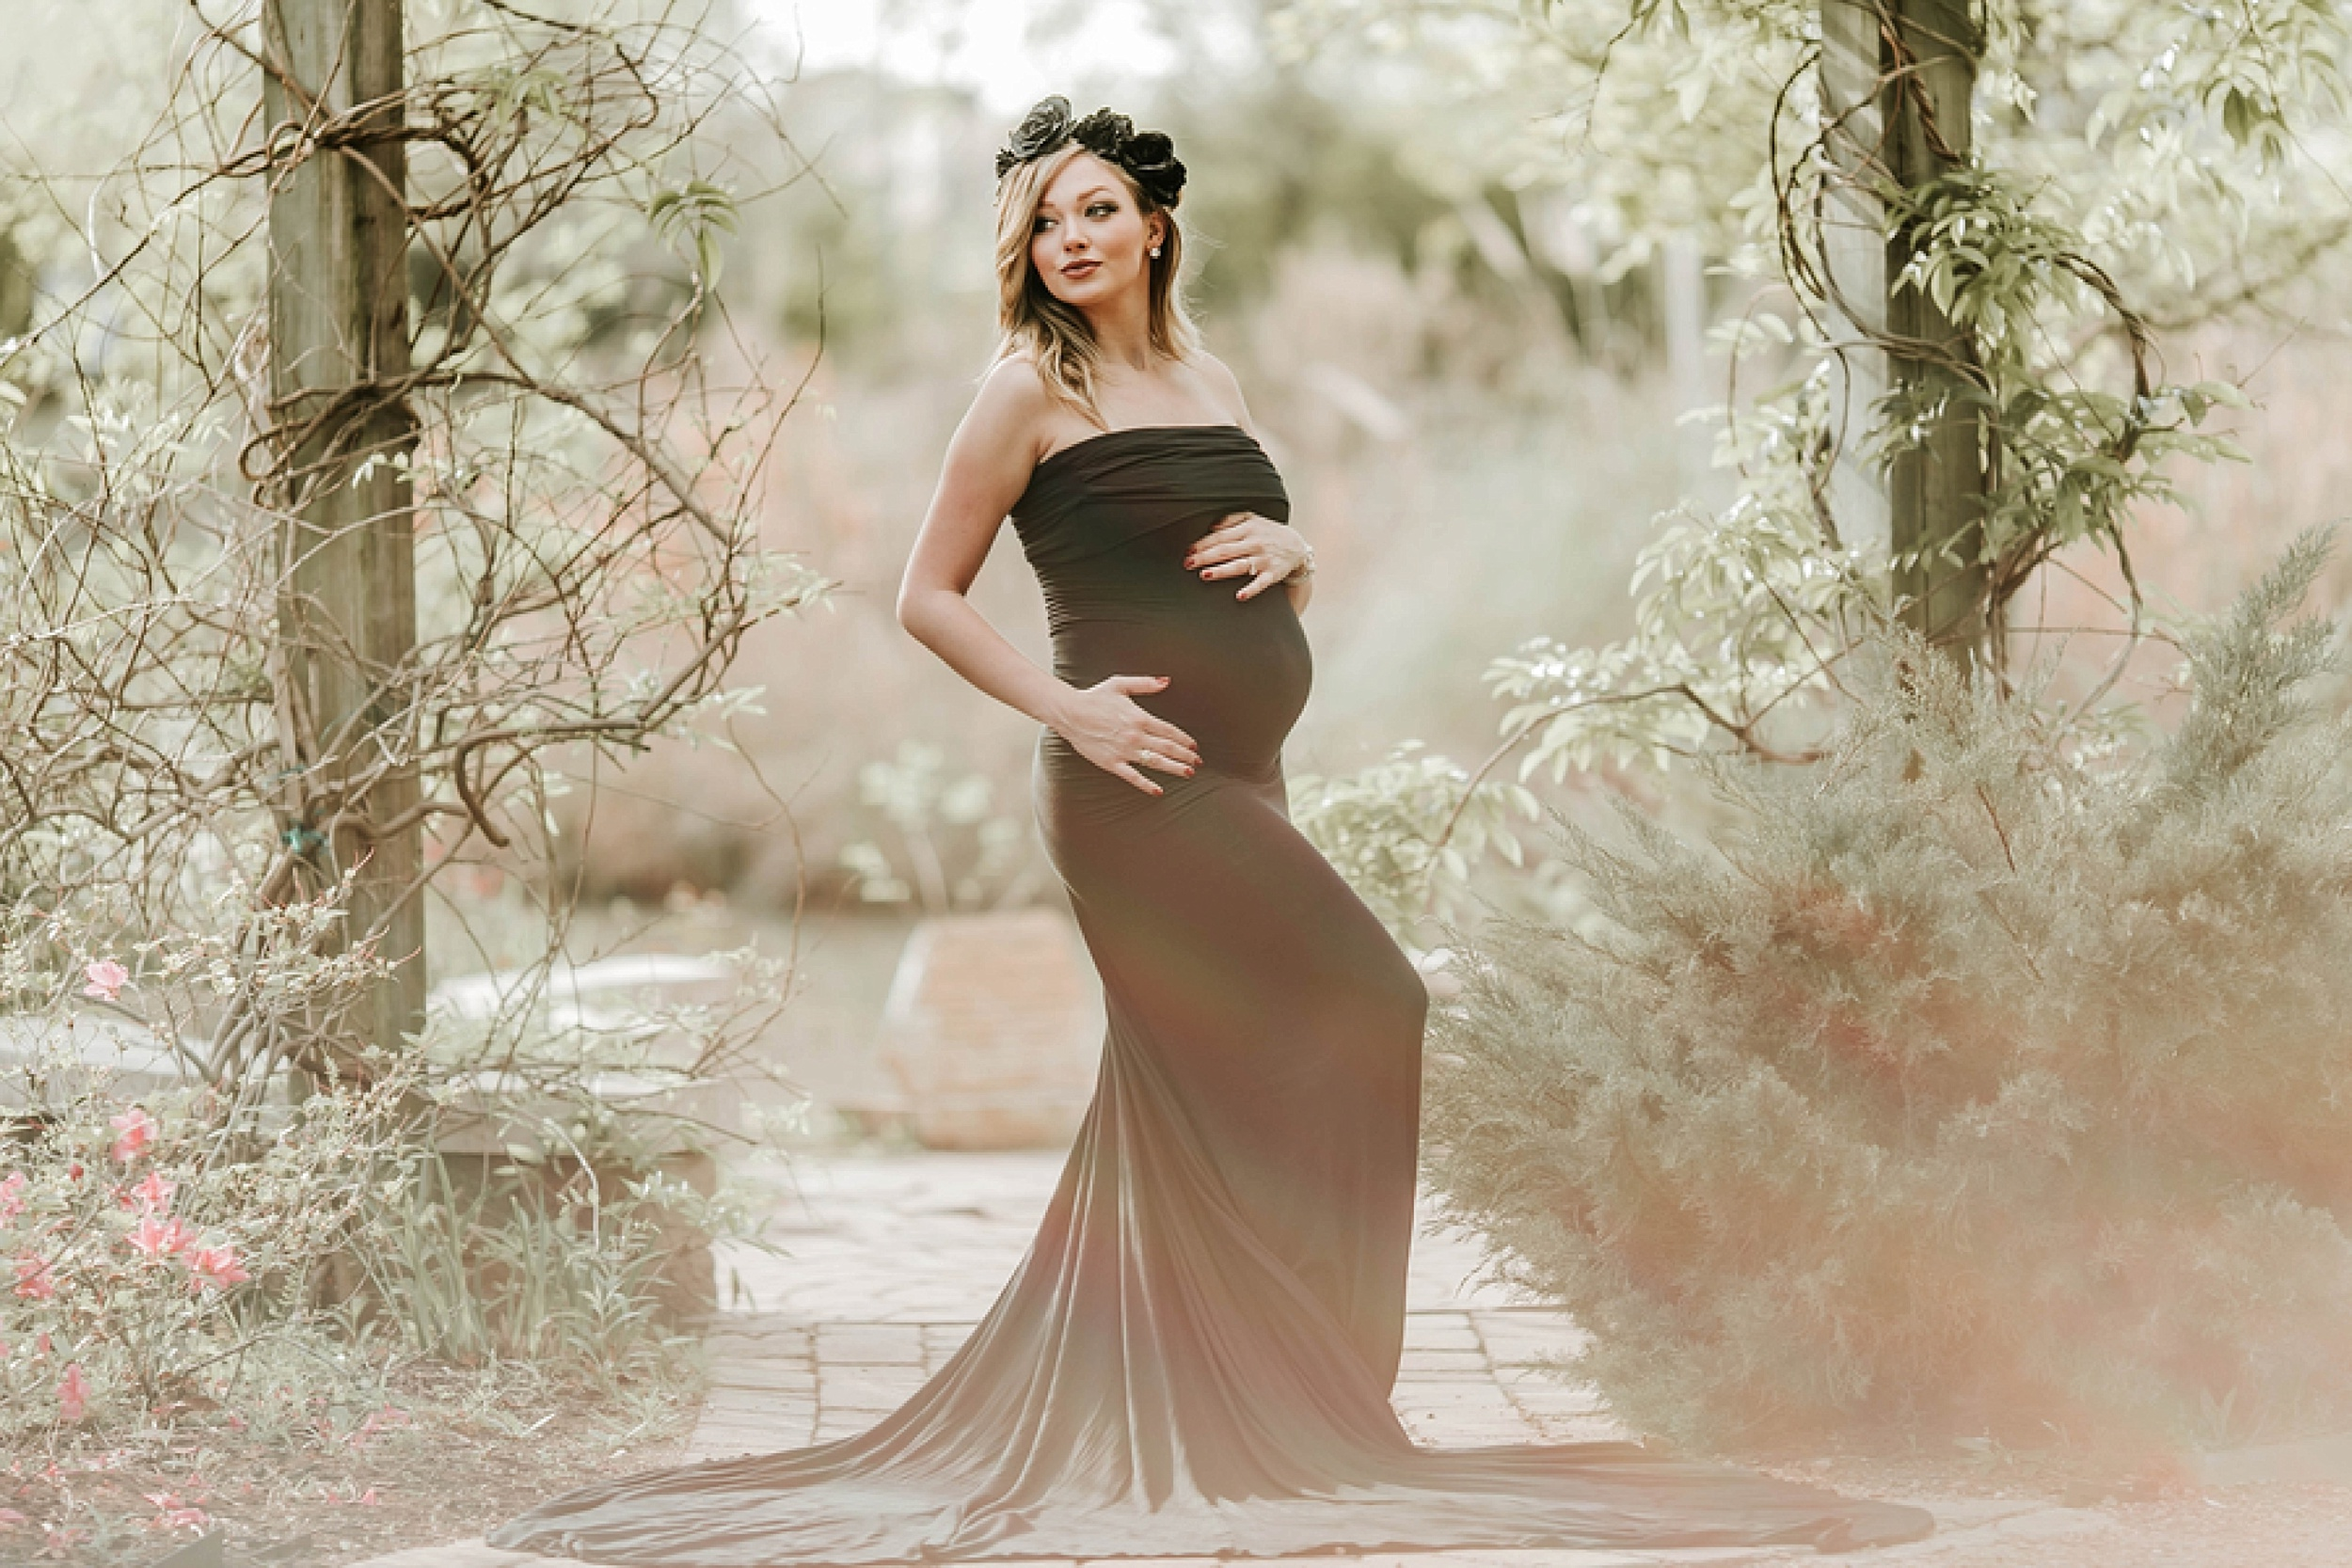 Southern Charm Rustic Maternity Pictures in Texas » Beyond The ...